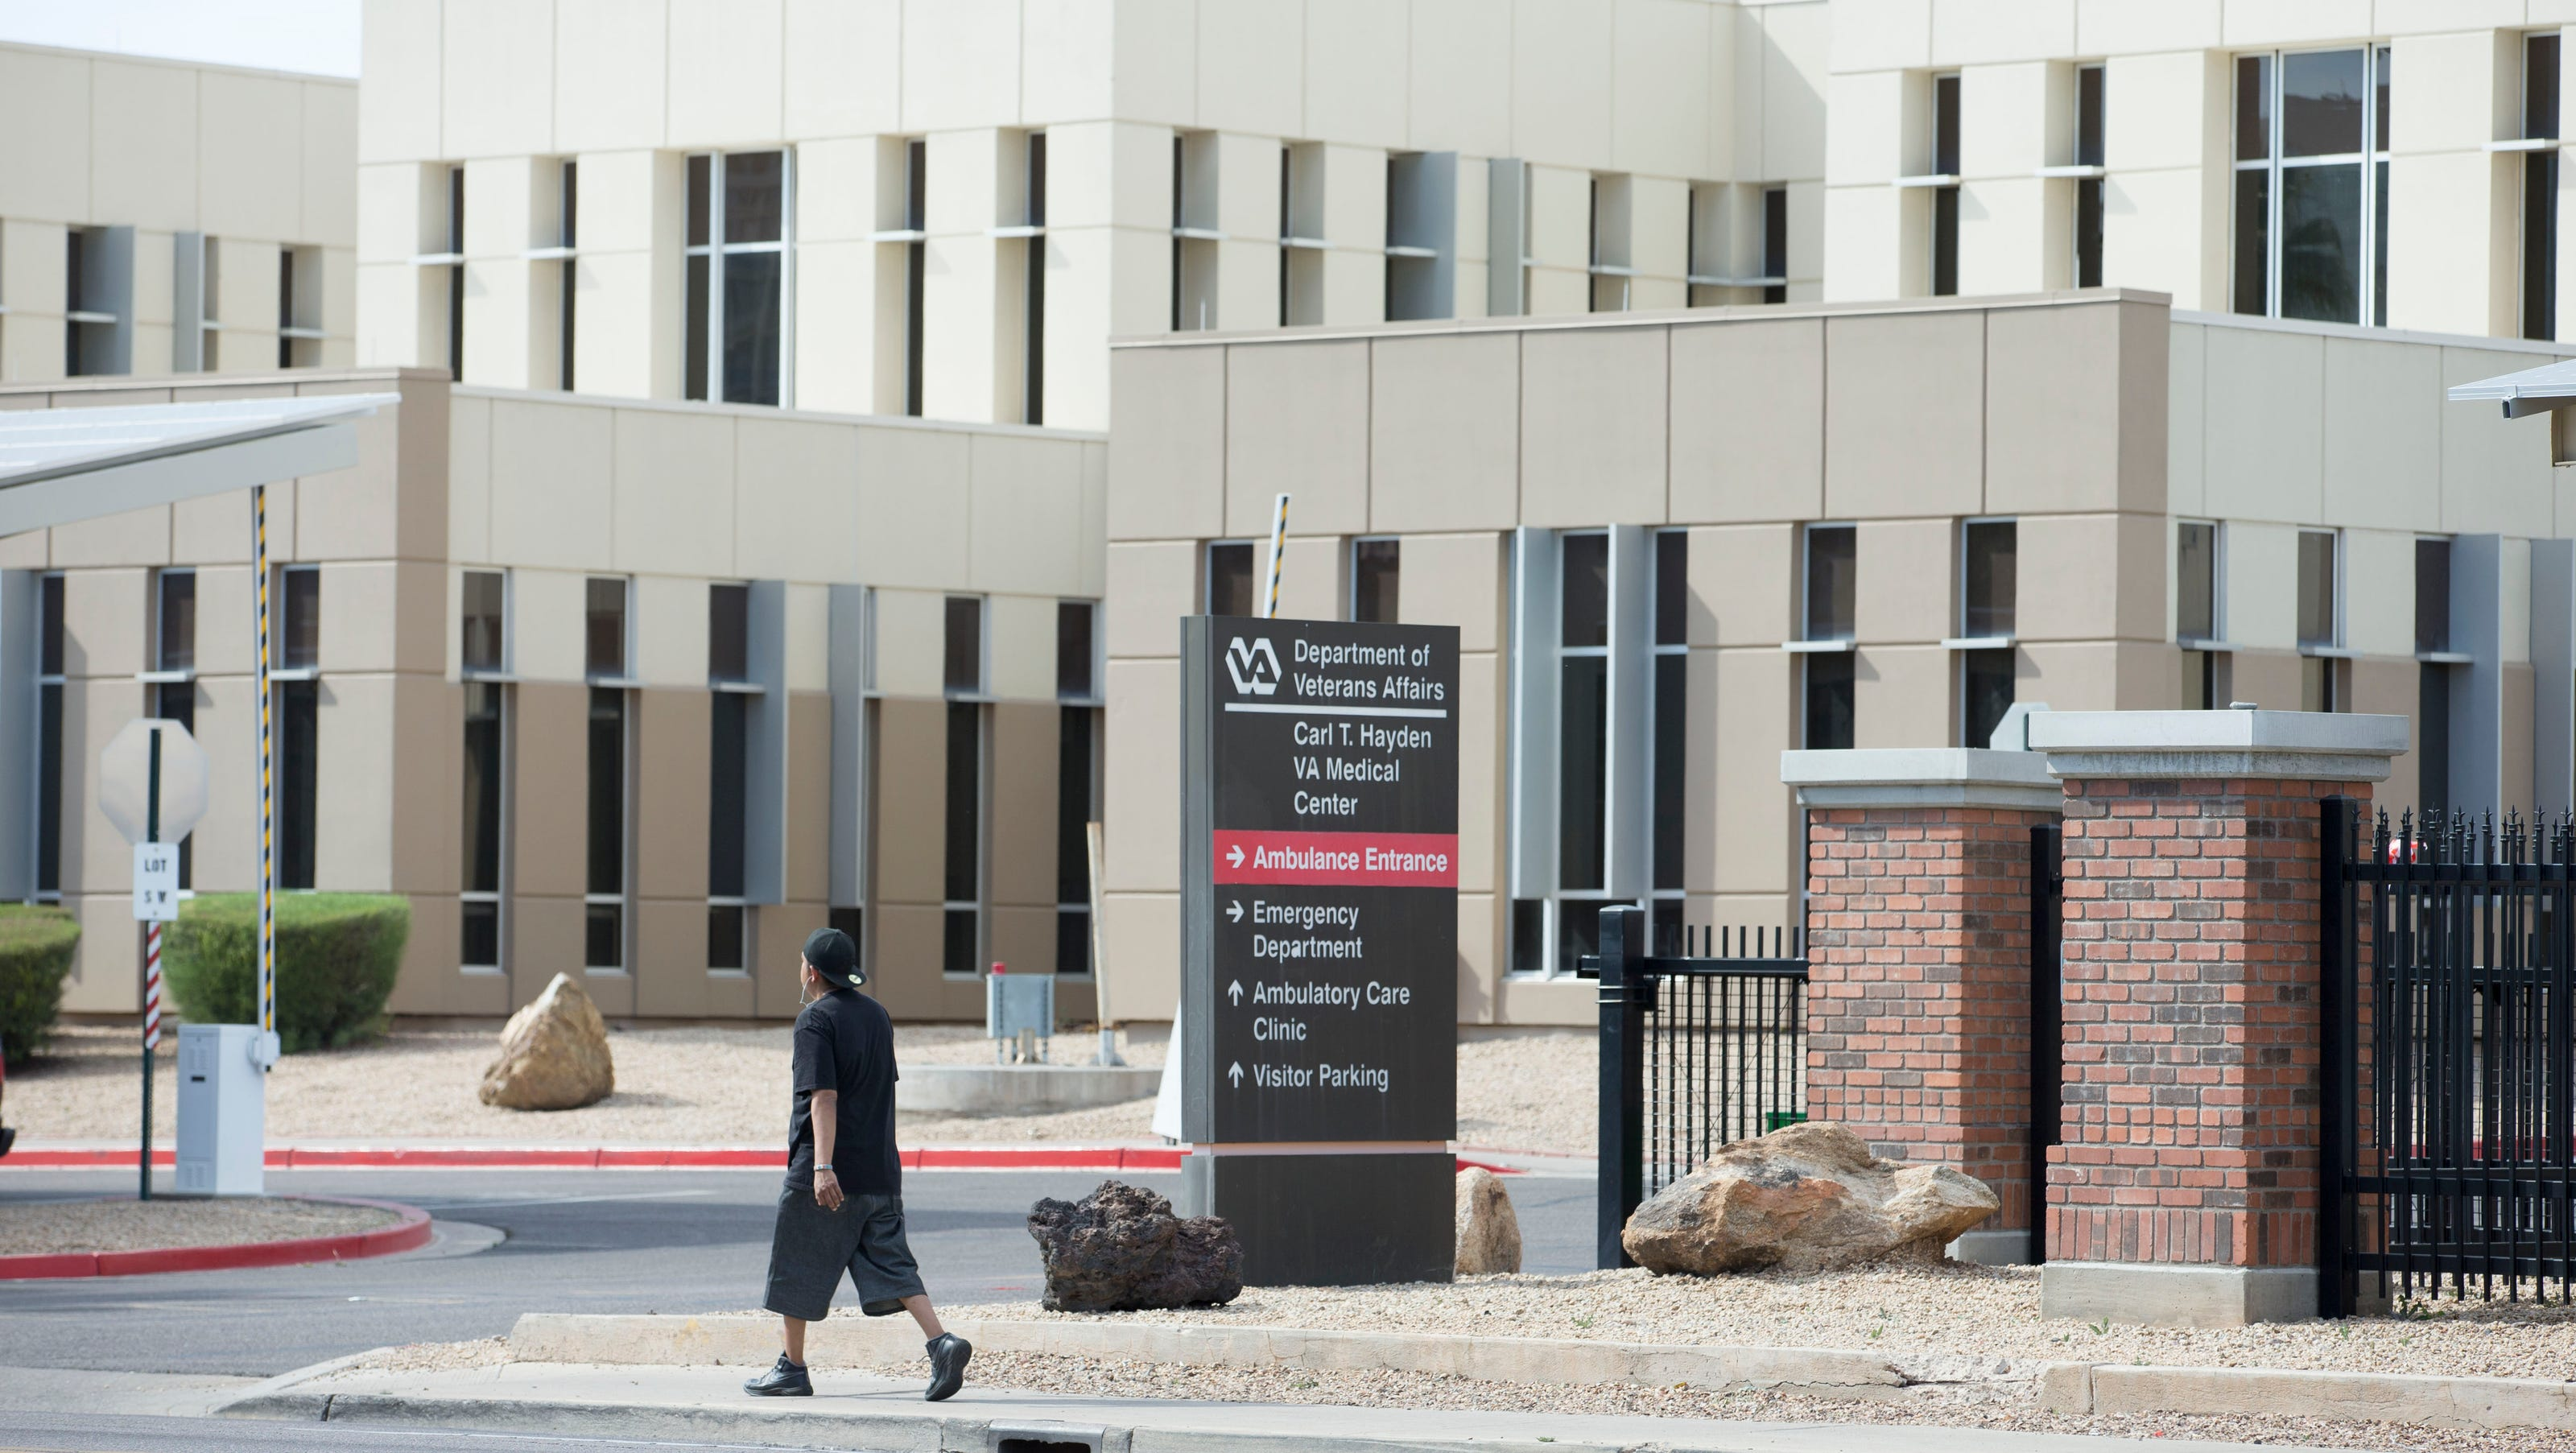 Deaths At Phoenix Va Hospital May Be Tied To Delayed Care